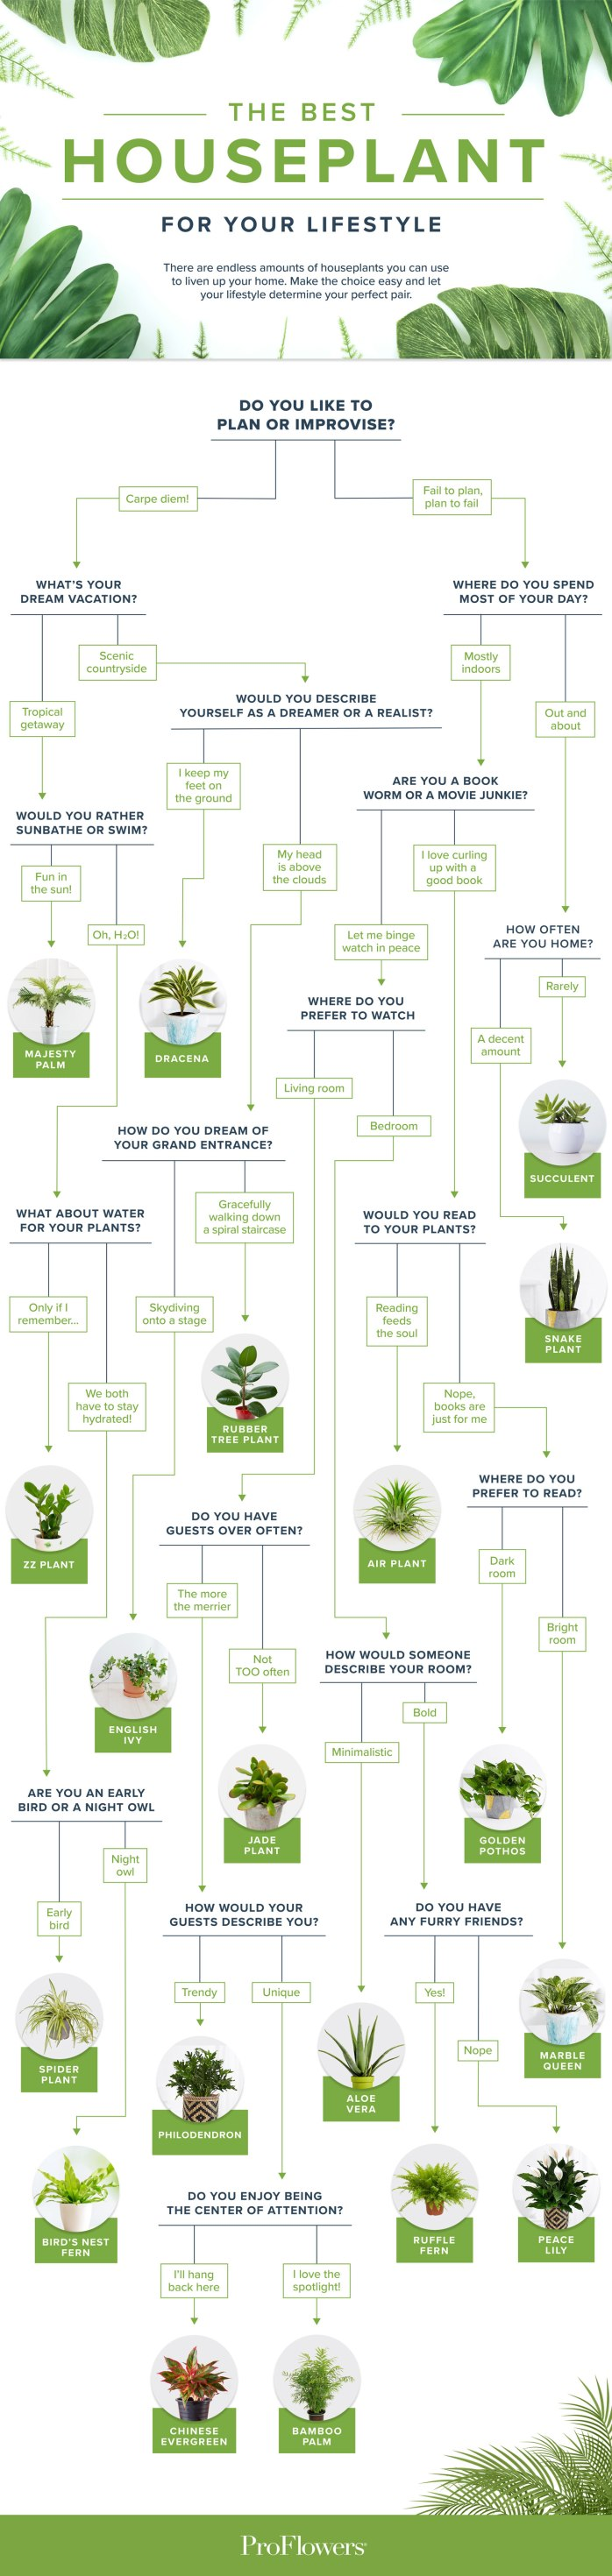 best houseplant for your lifestyle flowchart